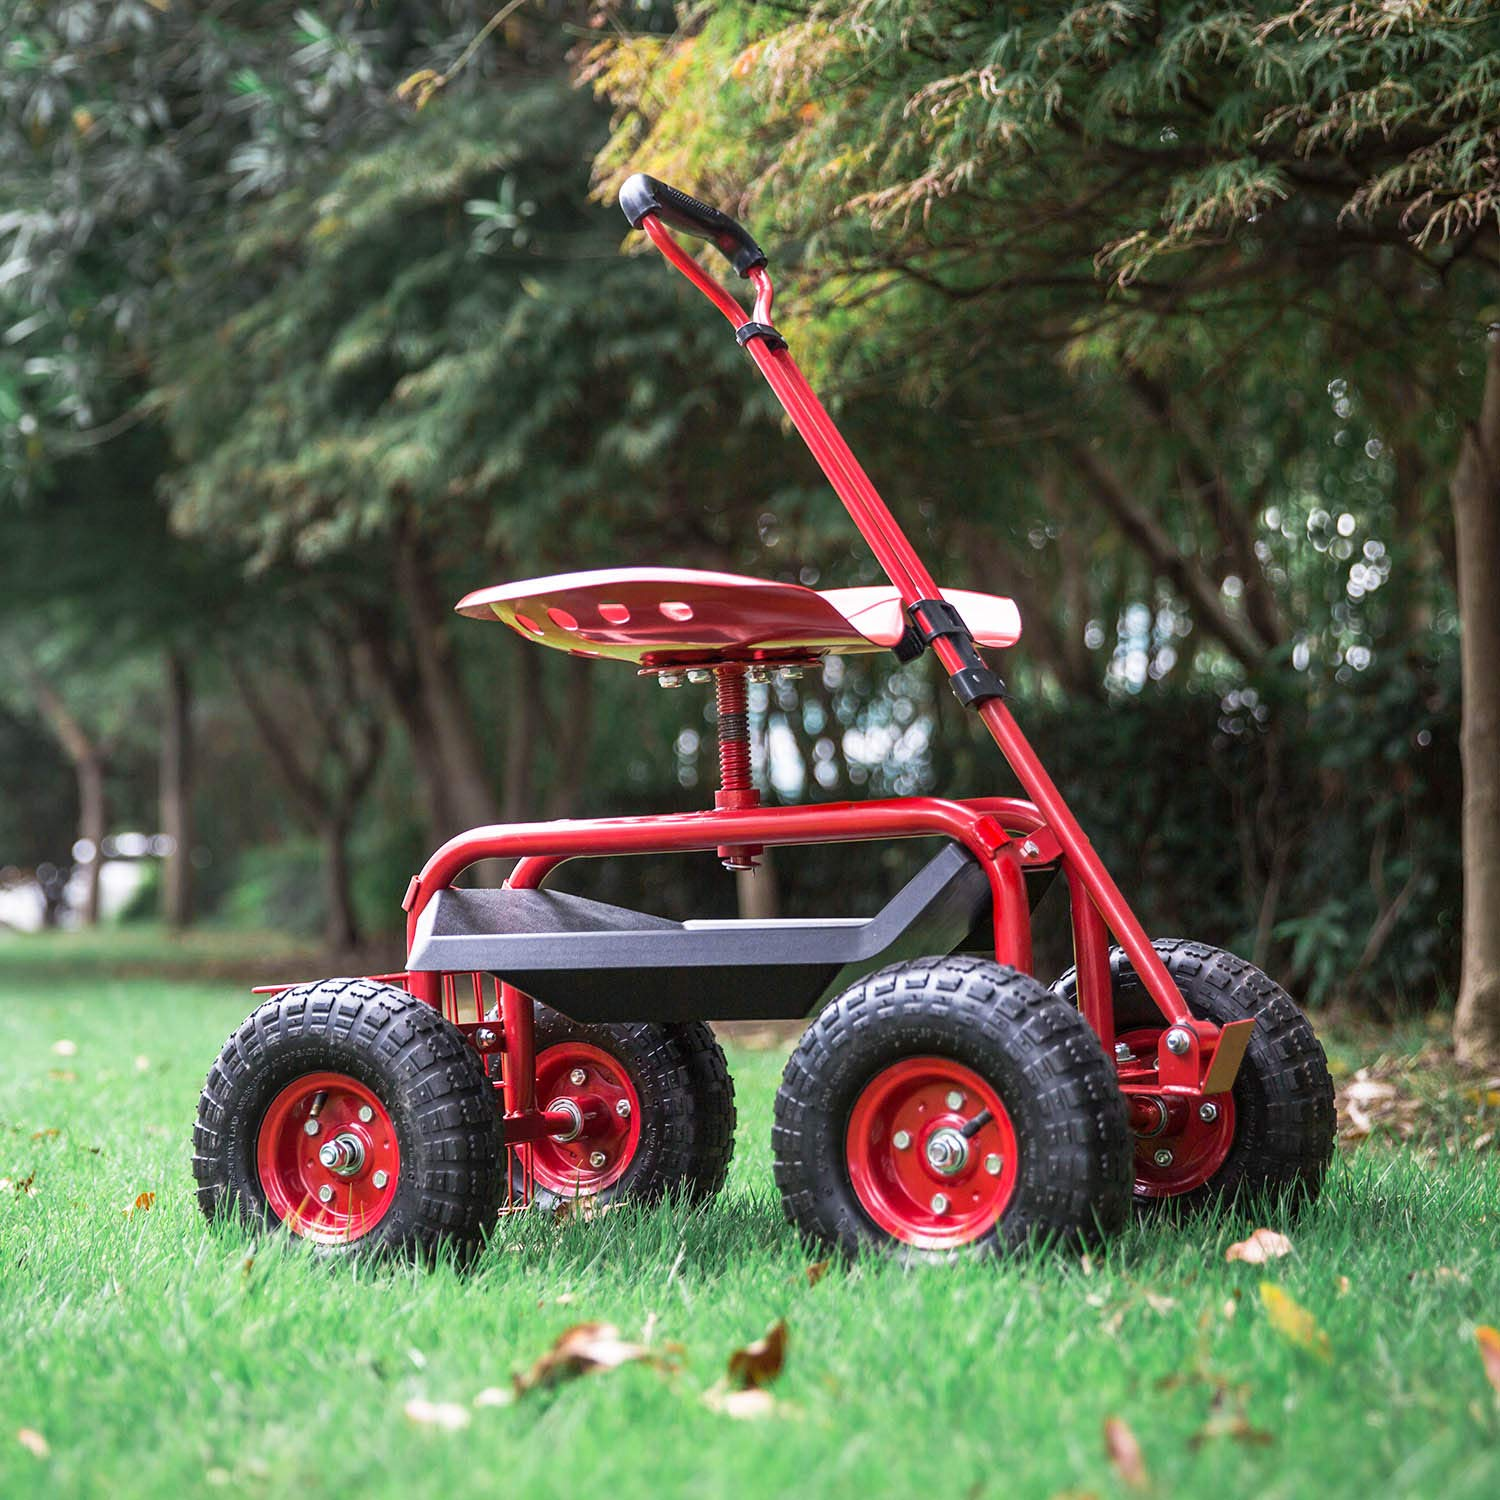 Peach Tree Garden Cart Rolling Work Seat Outdoor Utility Lawn Yard Patio Wagon Scooter for Planting Adjustable Handle 360 Degree Swivel Seat Red